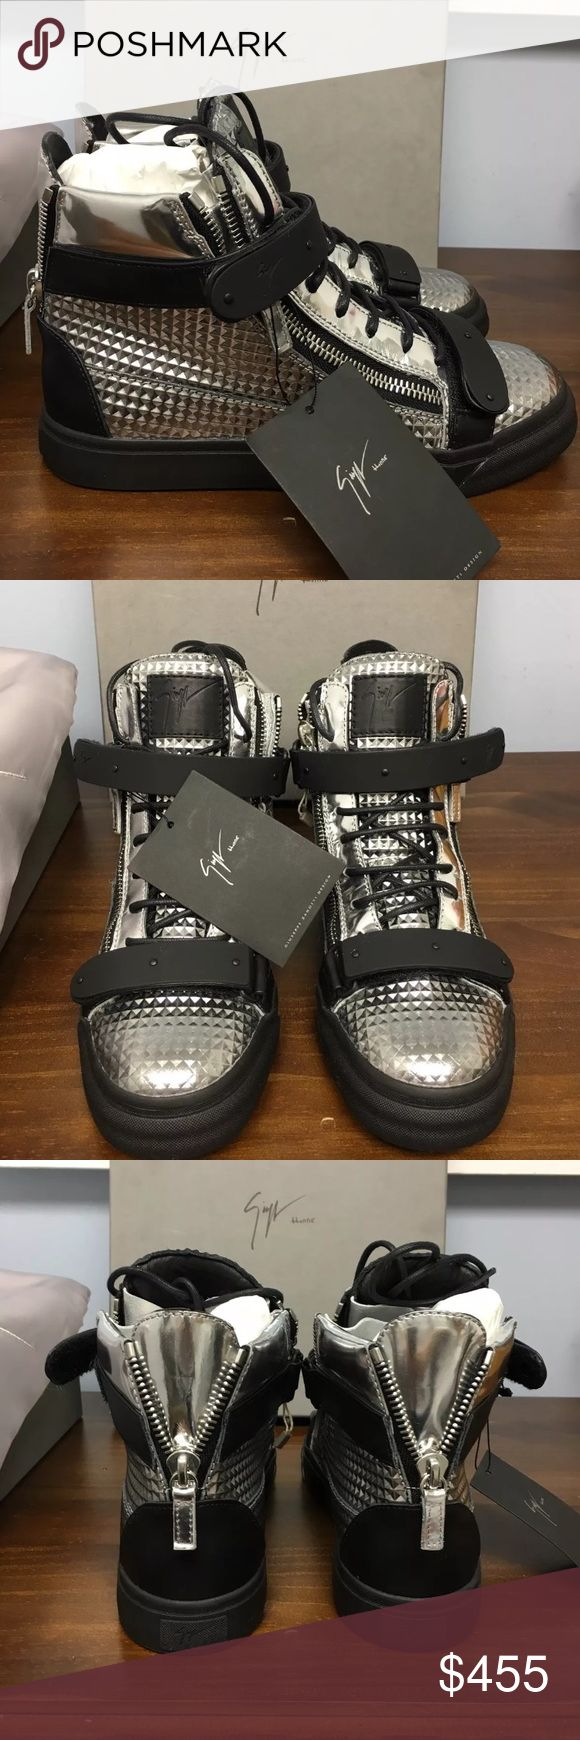 Giuseppe Zanotti Silver/Black Brand new never worn pairs in stock comes with original boxes! Text me if your interested in purchasing today. Posh takes a big percentage out of sale but being protected with a safe sale is my biggest priority! Giuseppe Zanotti Shoes Sneakers